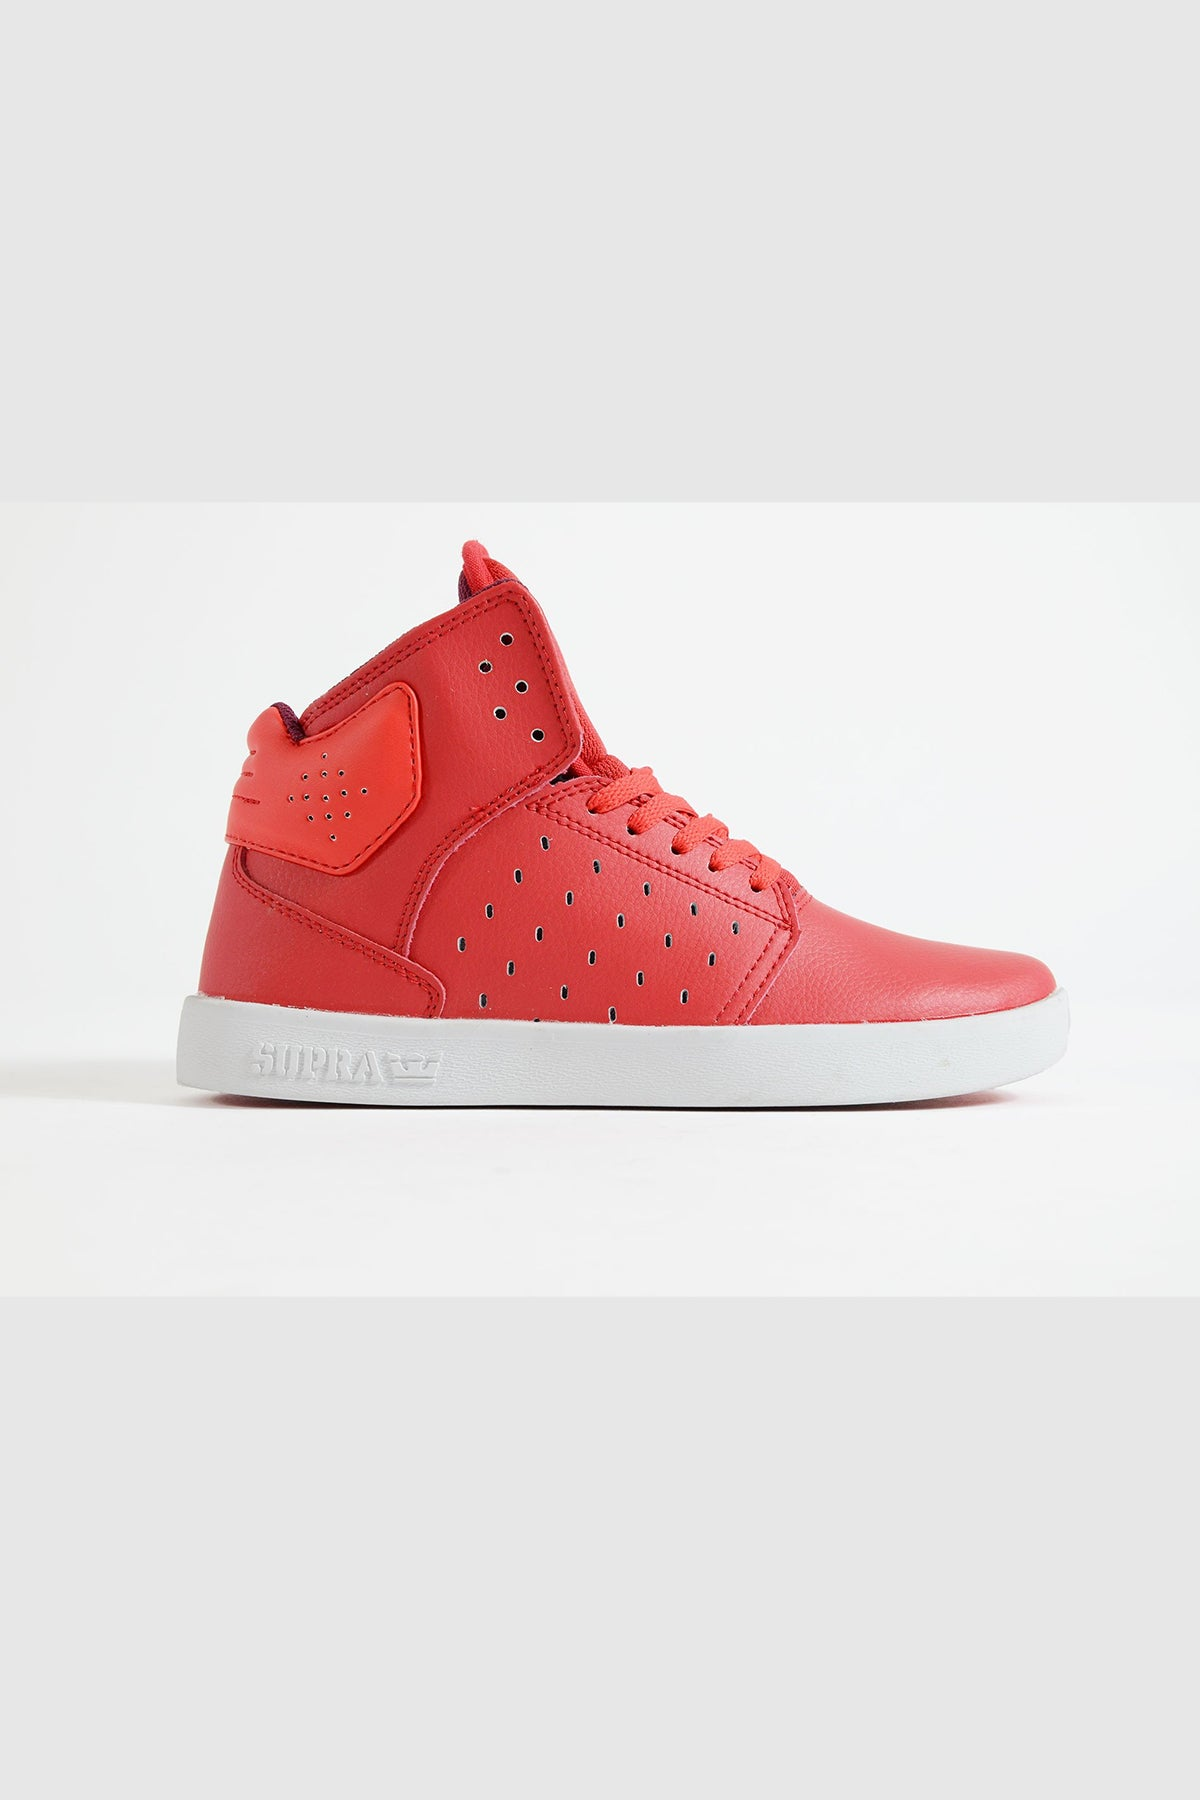 Supra - Atom 2 Kids (Red/White)